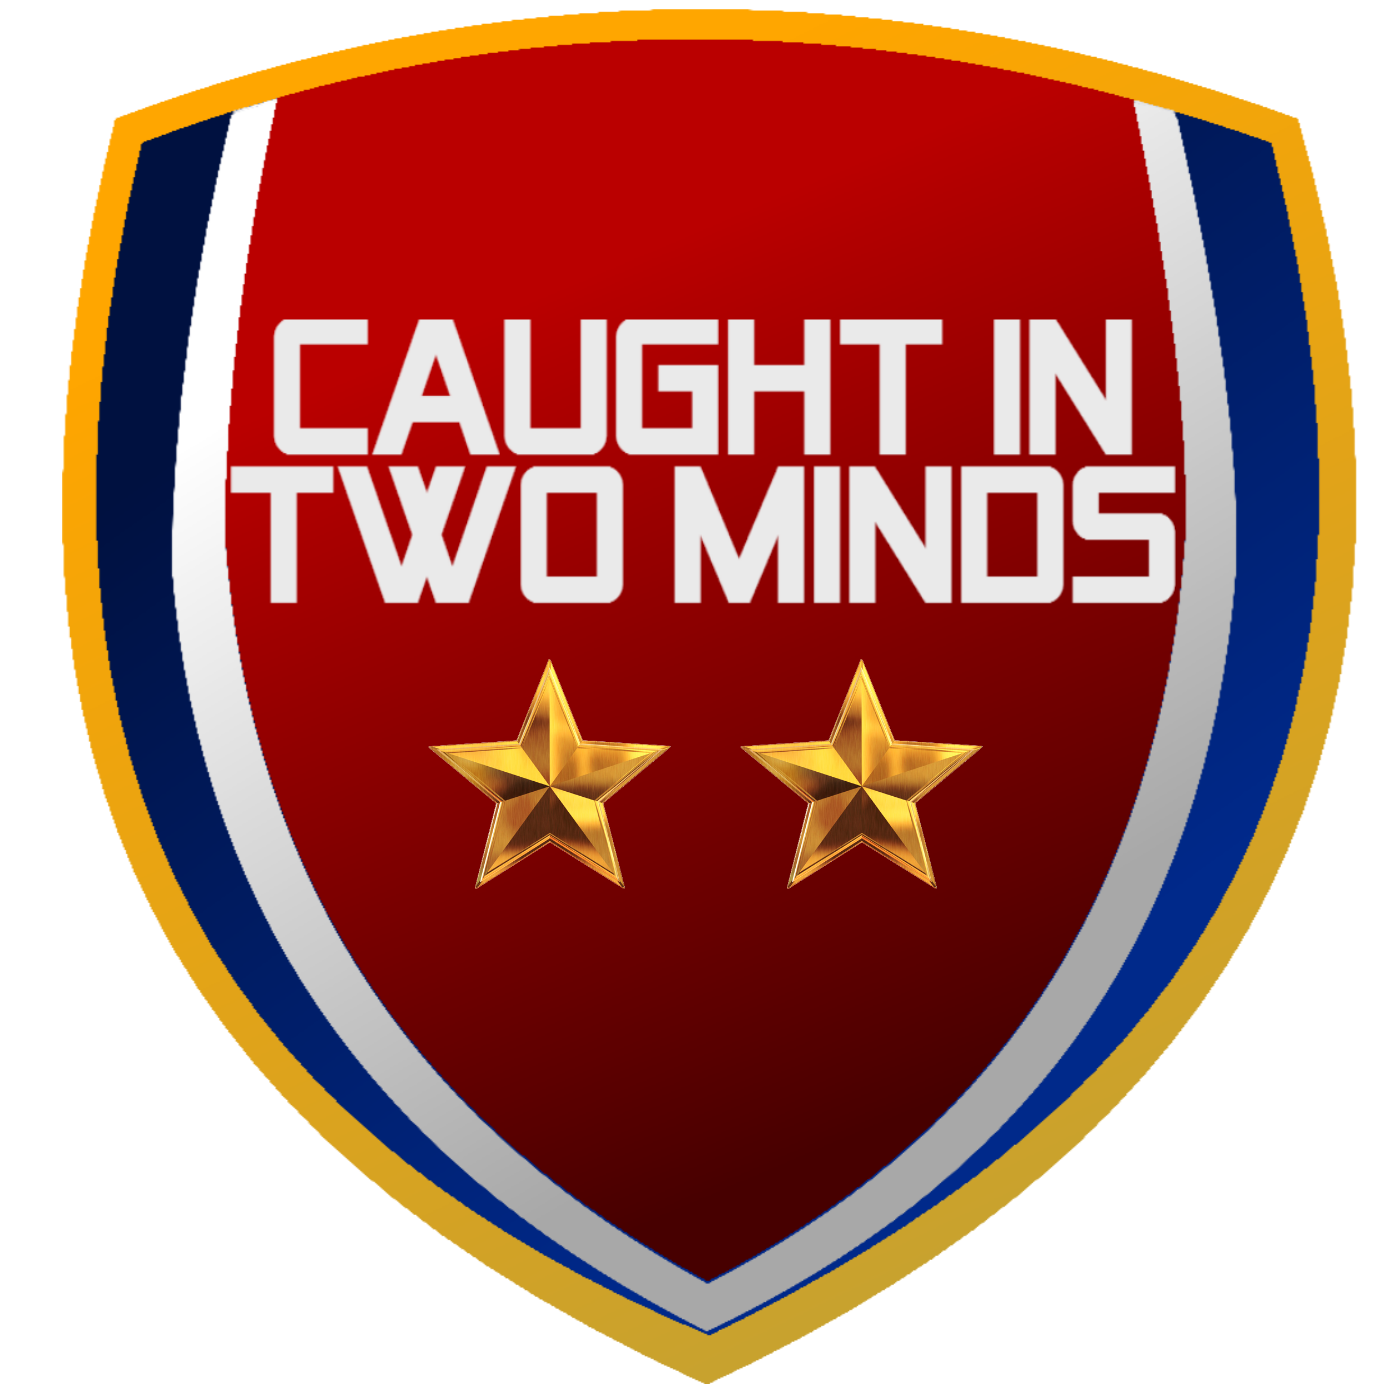 #28 - Caught In Two Minds